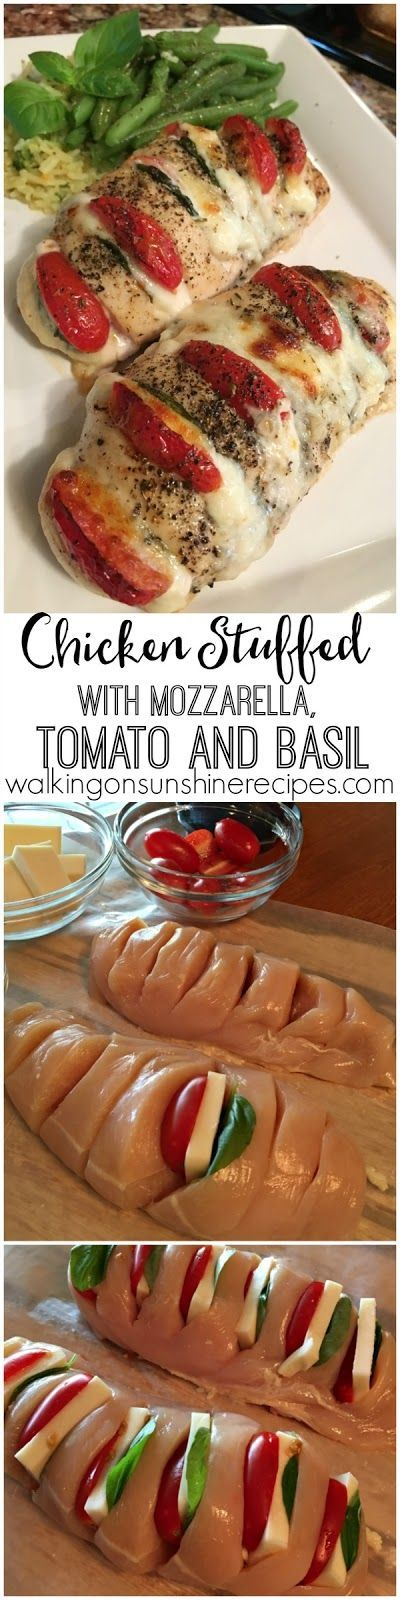 Hasselback chicken stuffed with mozzarella, tomato and basil is a new way to…